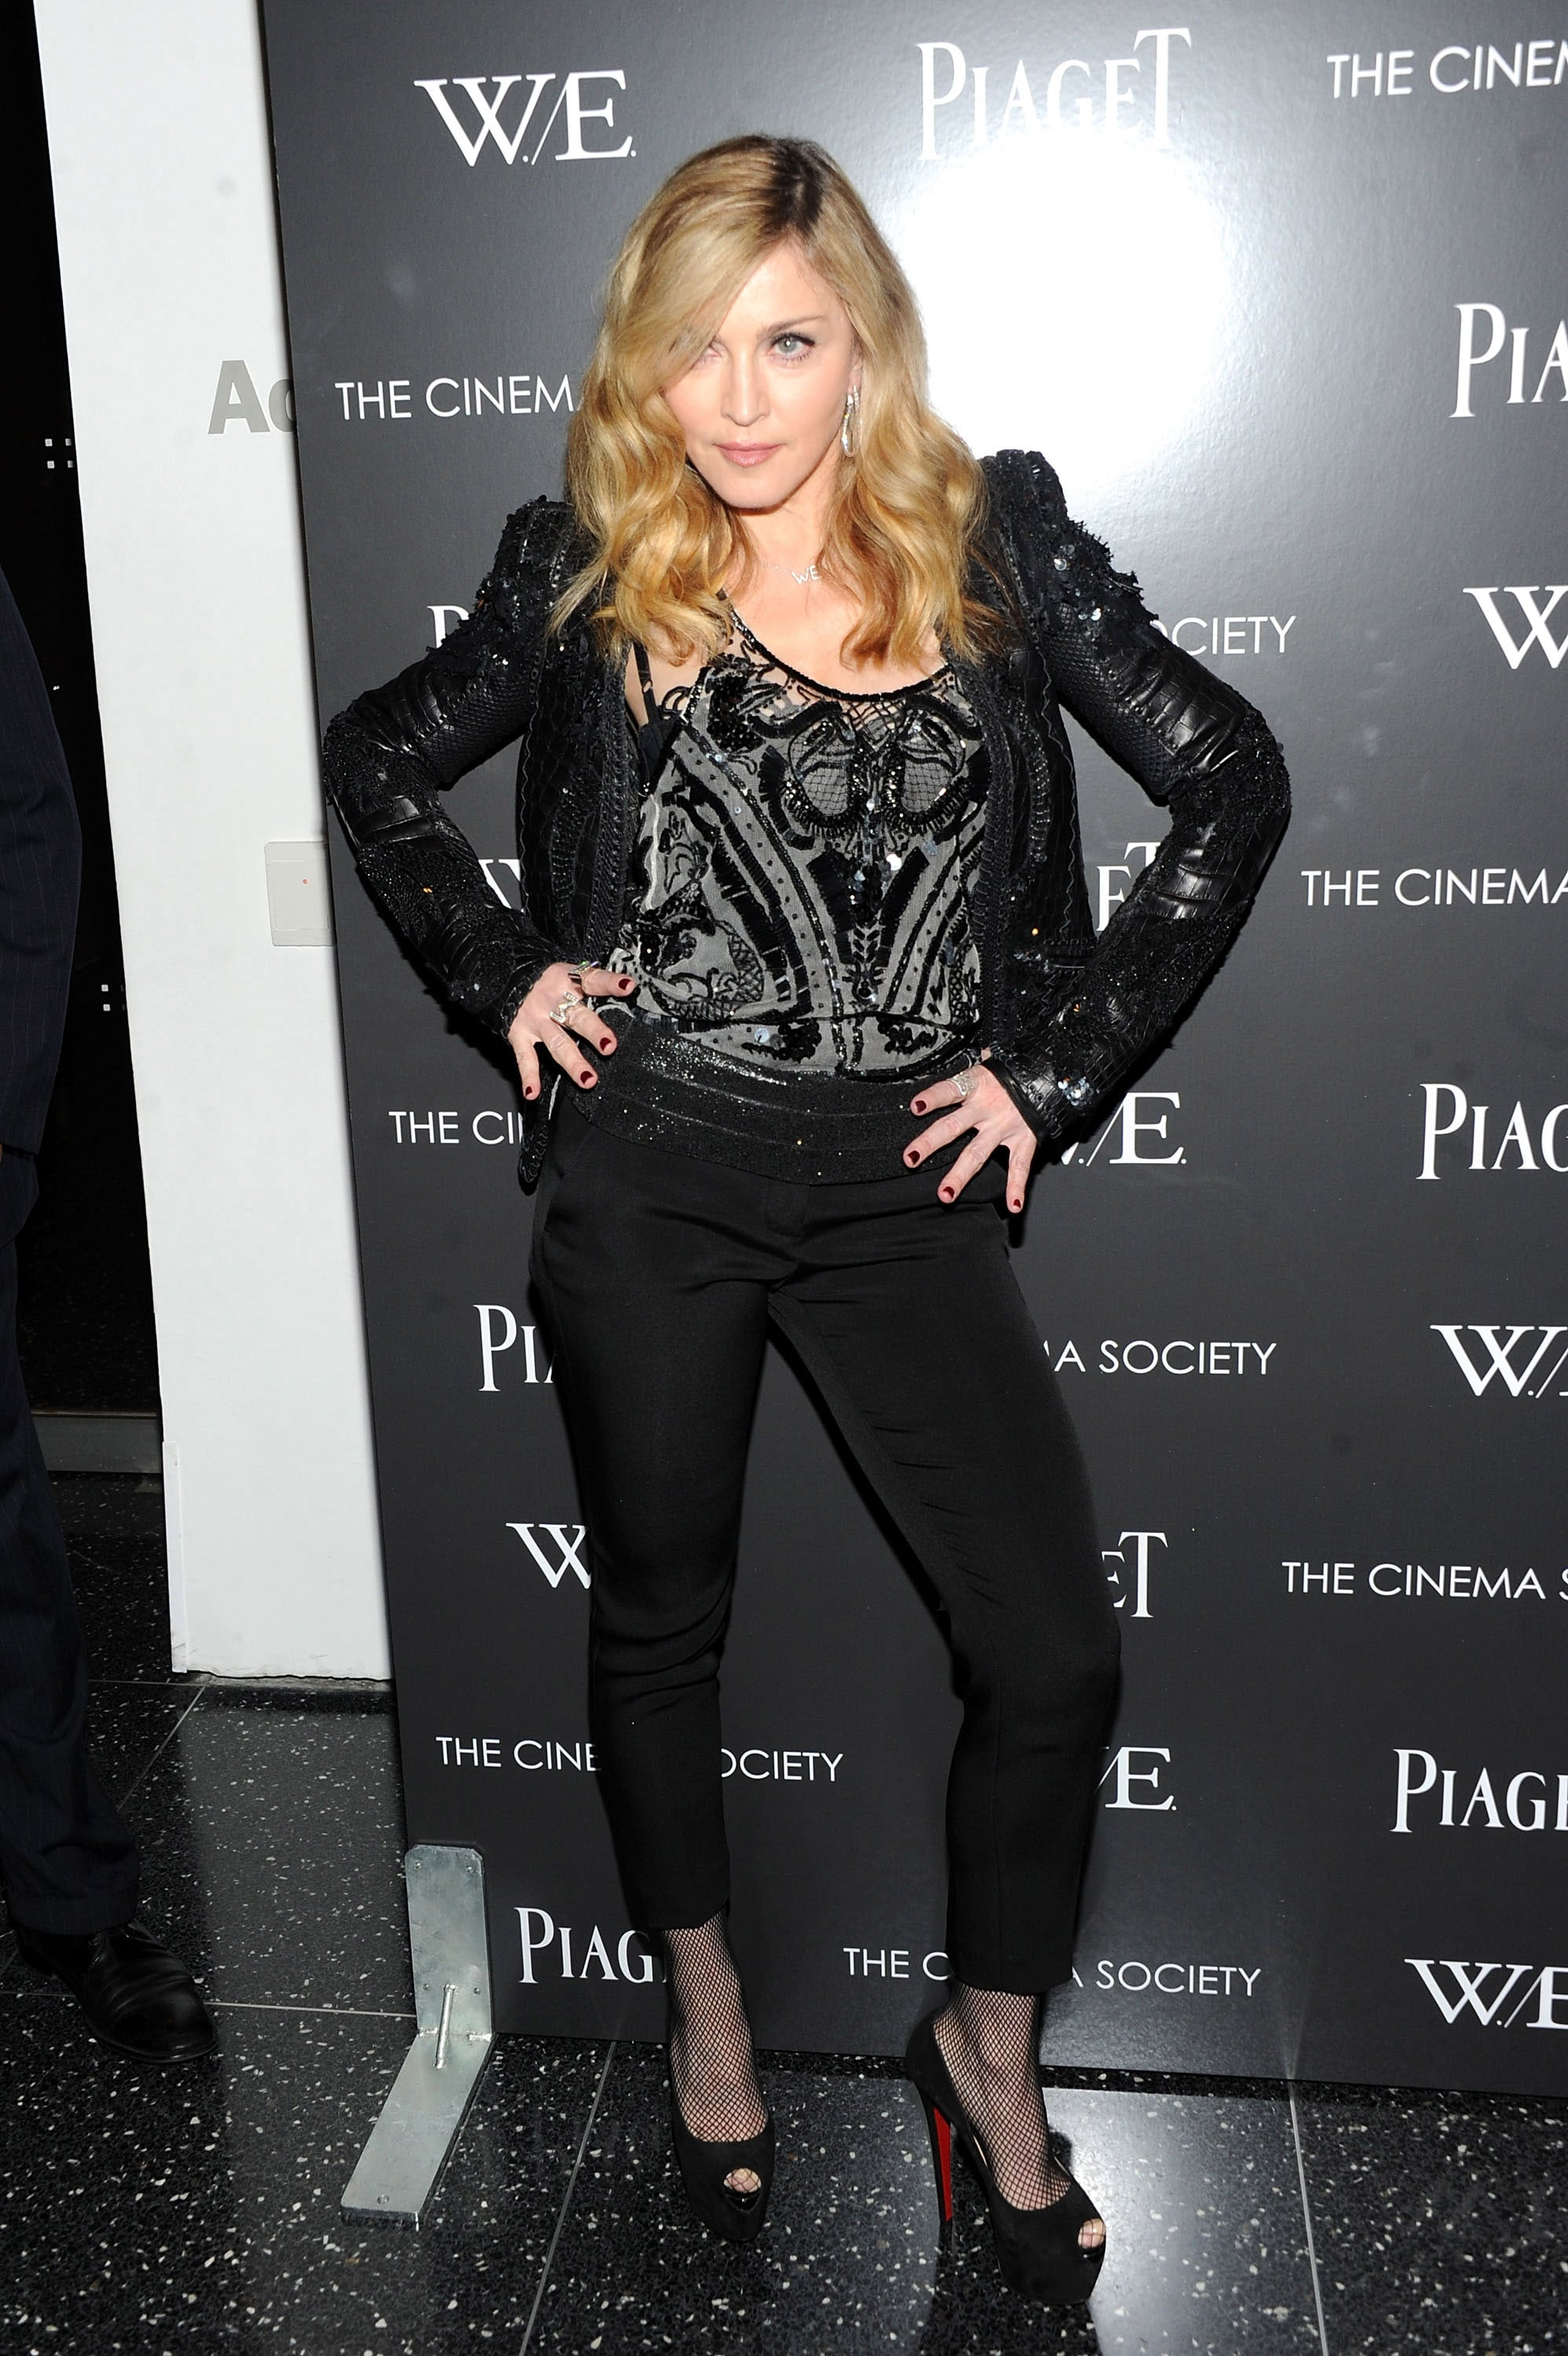 Madonna struck at pose in an embellished top and jacket at a film screening of W.E.